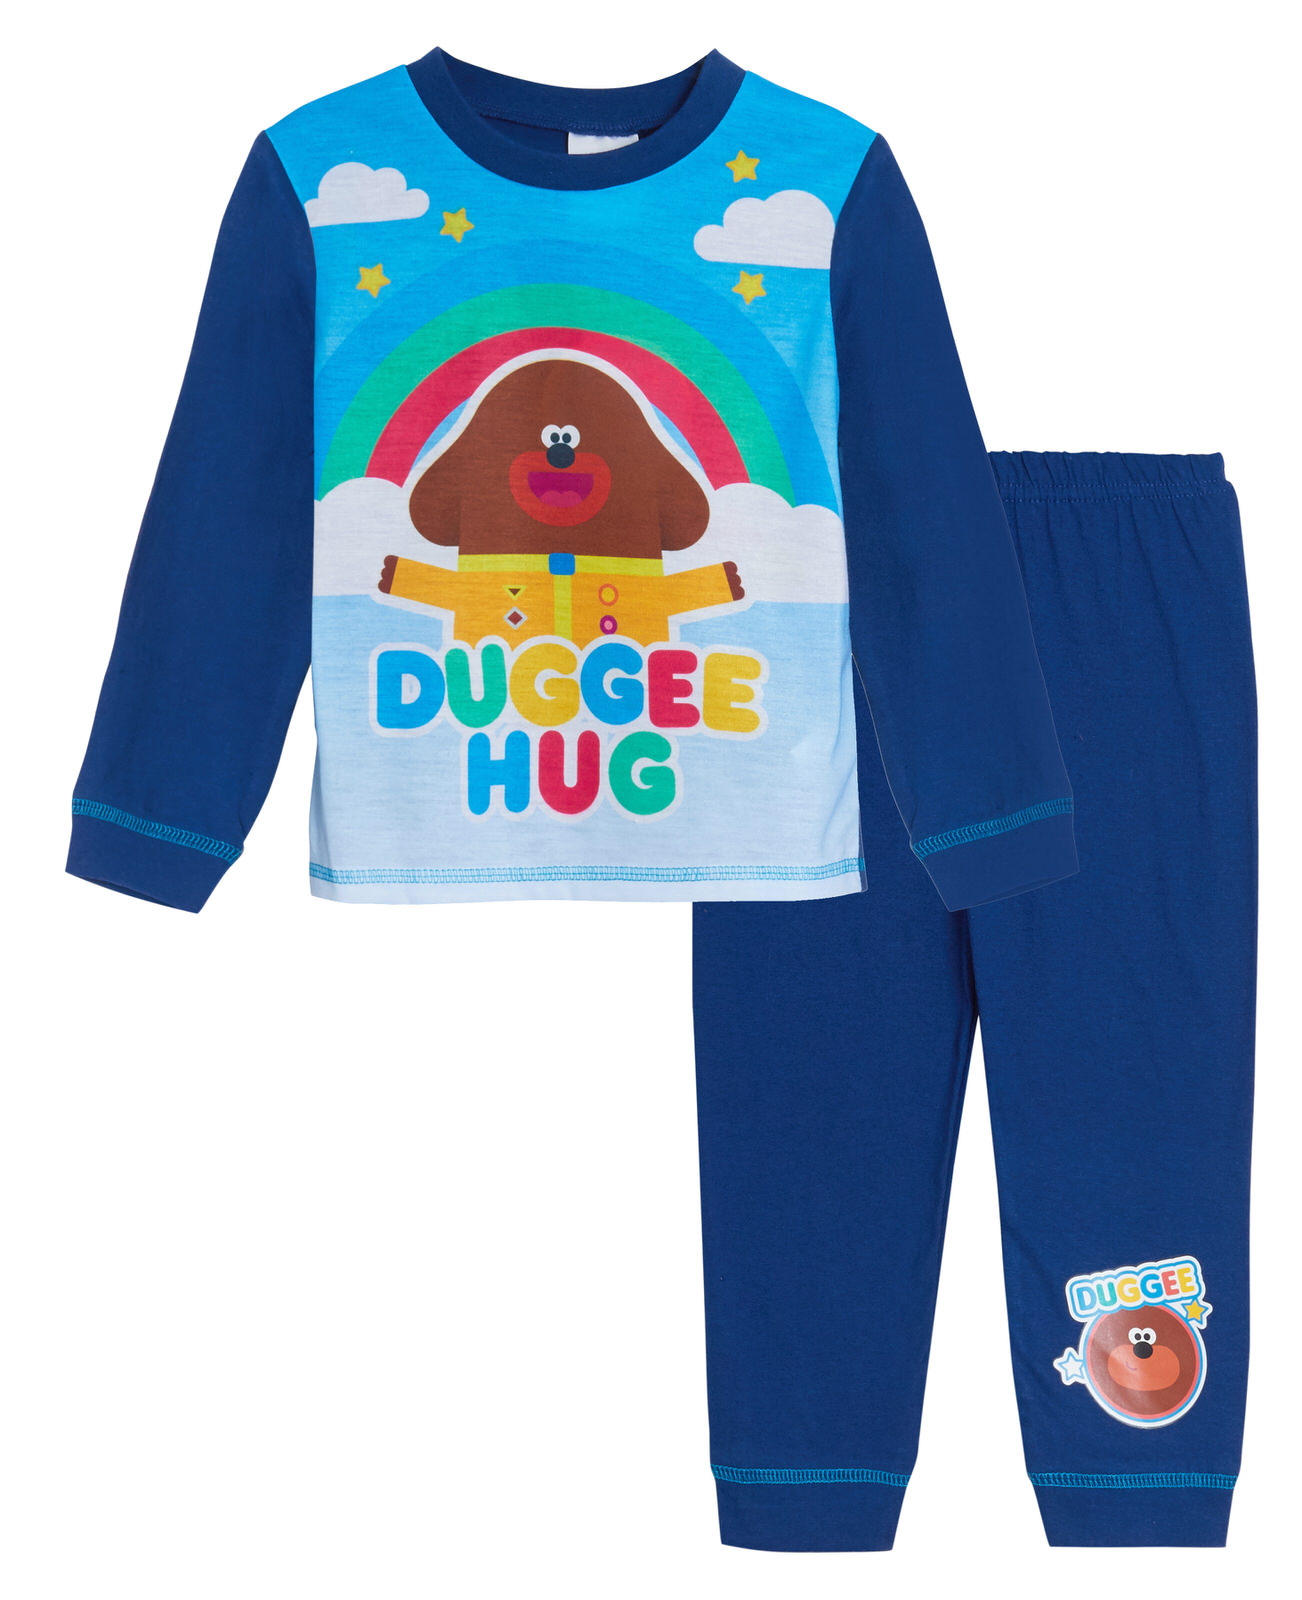 Kids Hey Duggee PyjamasBoys Hey Duggee Pyjama SetSquirrel Club Pjs